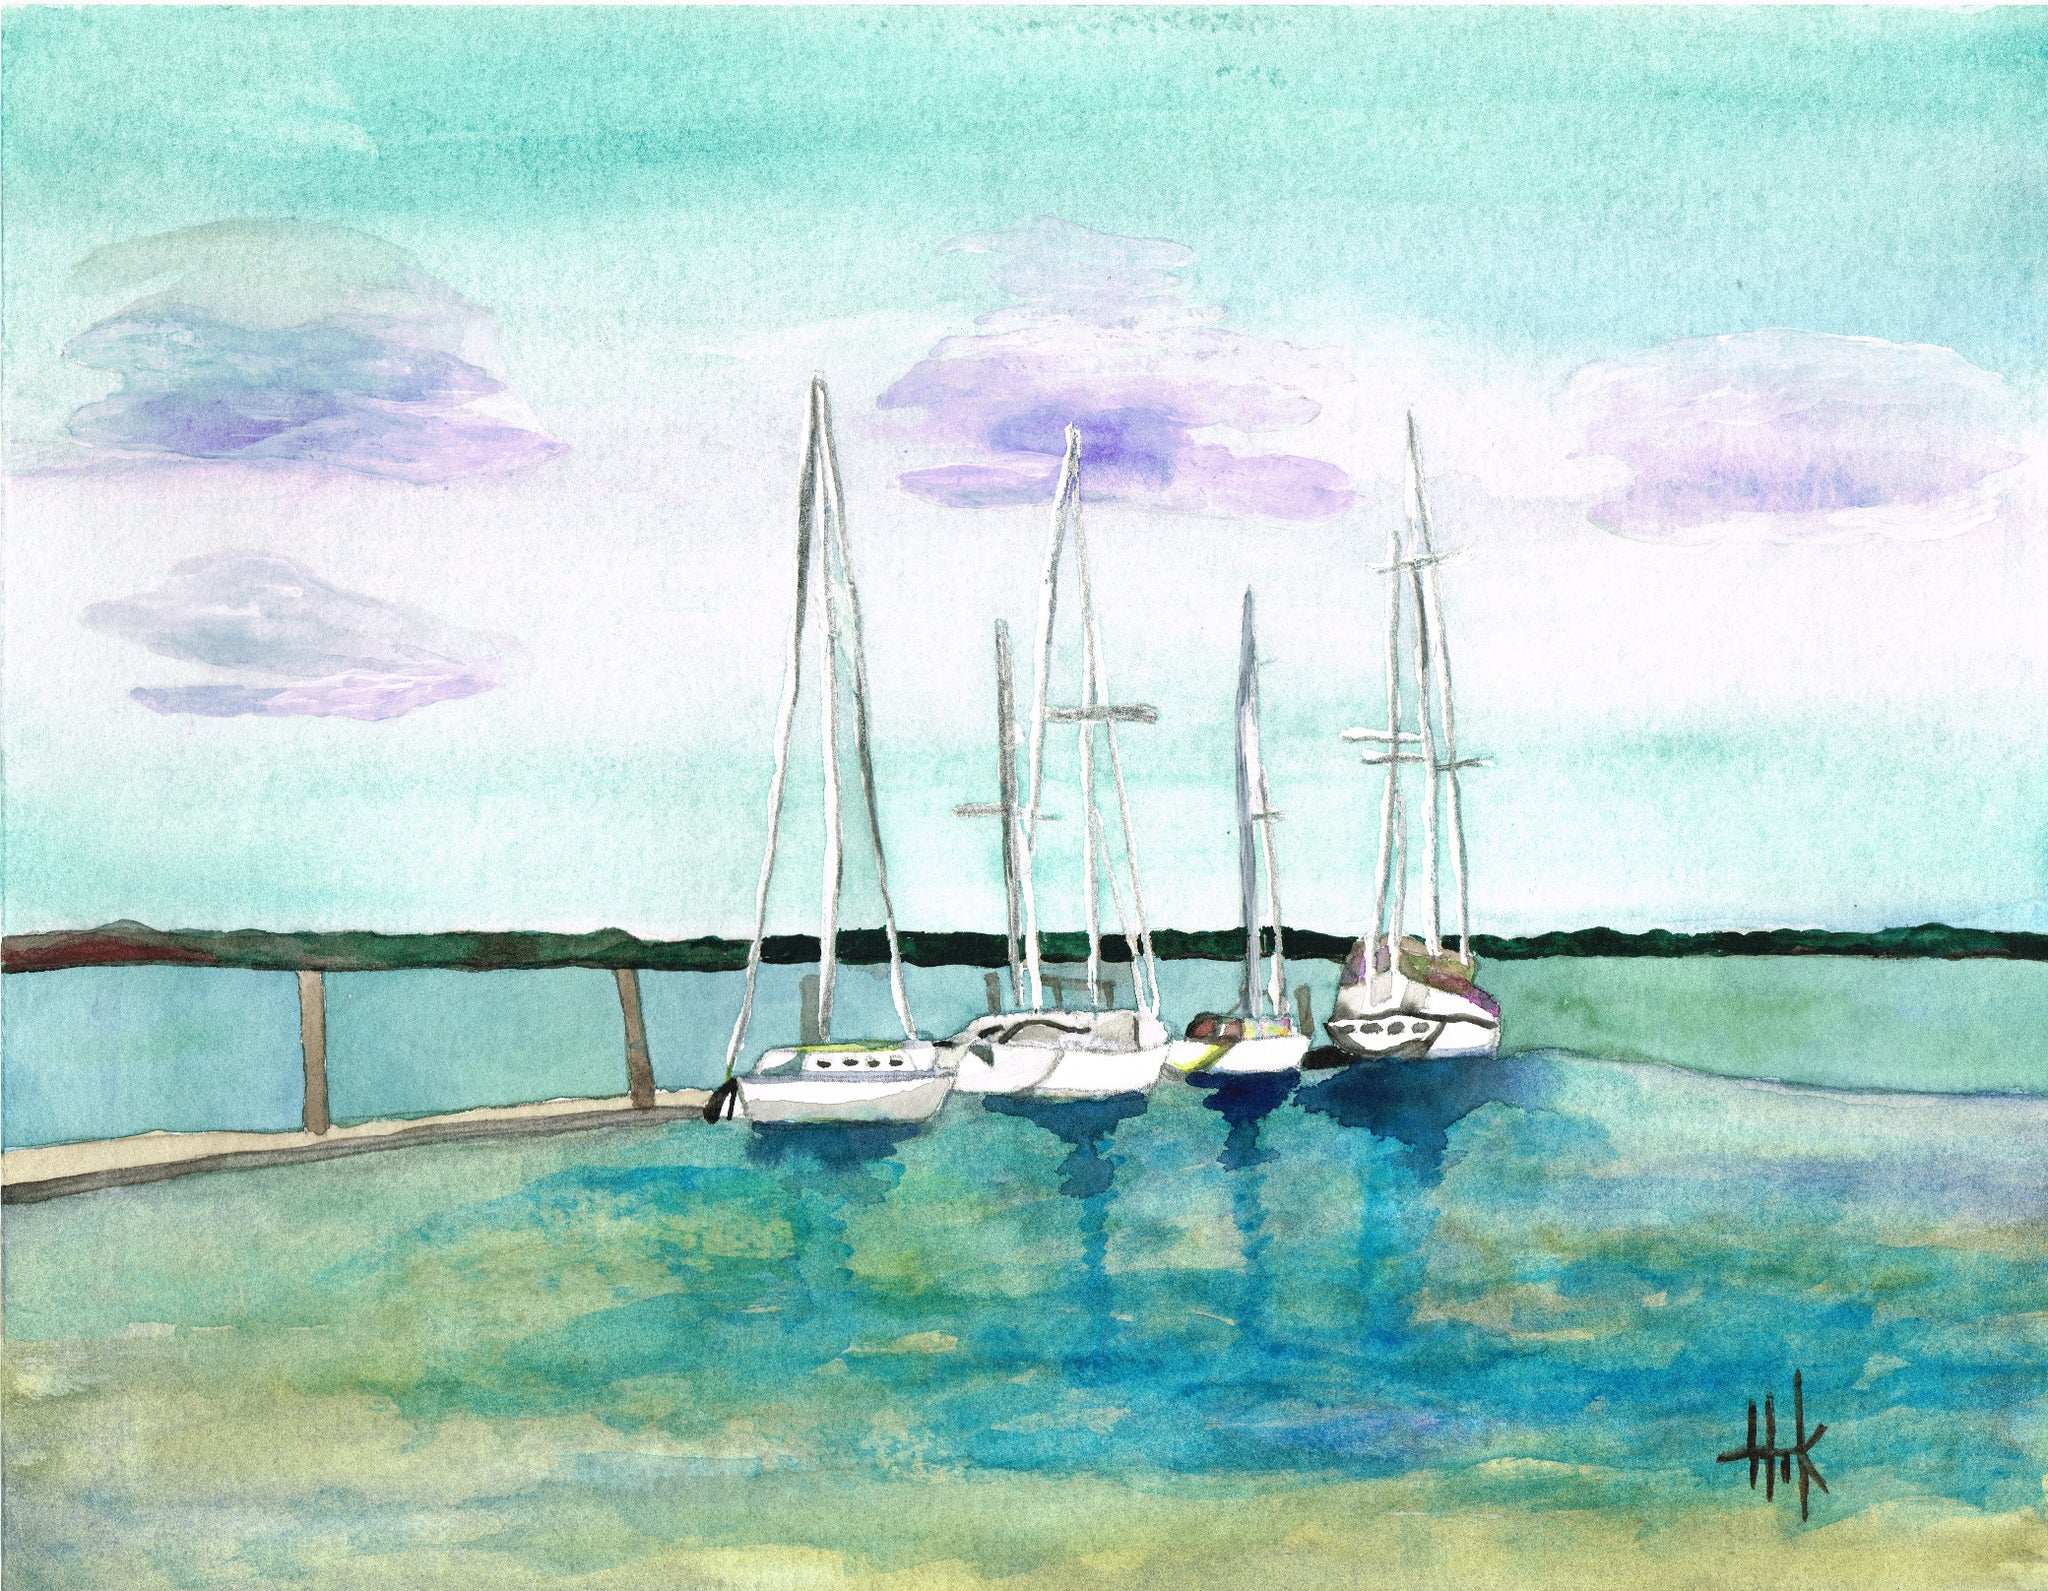 SAILBOATS AT DOCK - PRINT